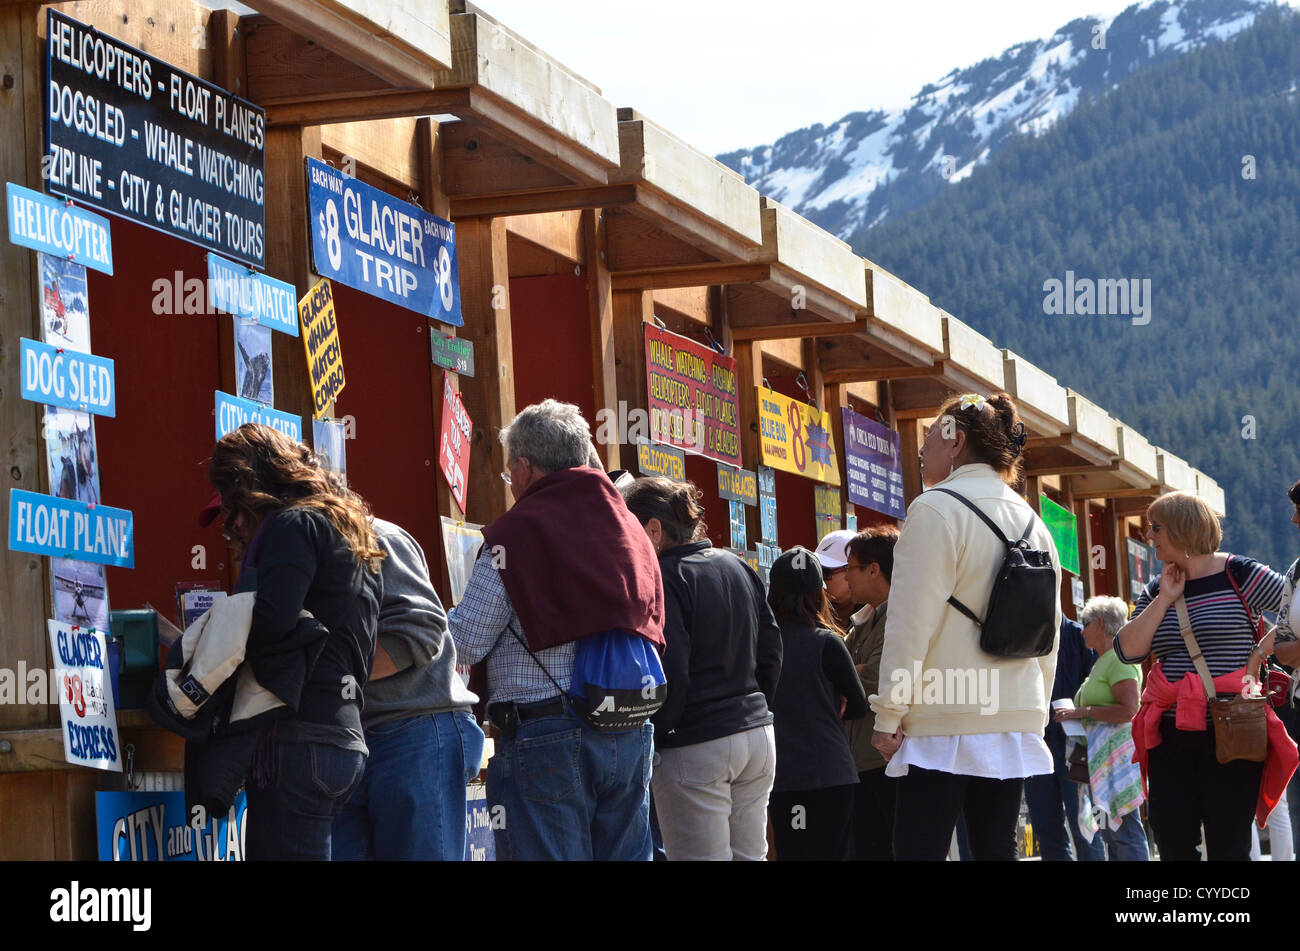 Tourists from a cruise ship booking tours in Juneau, Alaska. - Stock Image